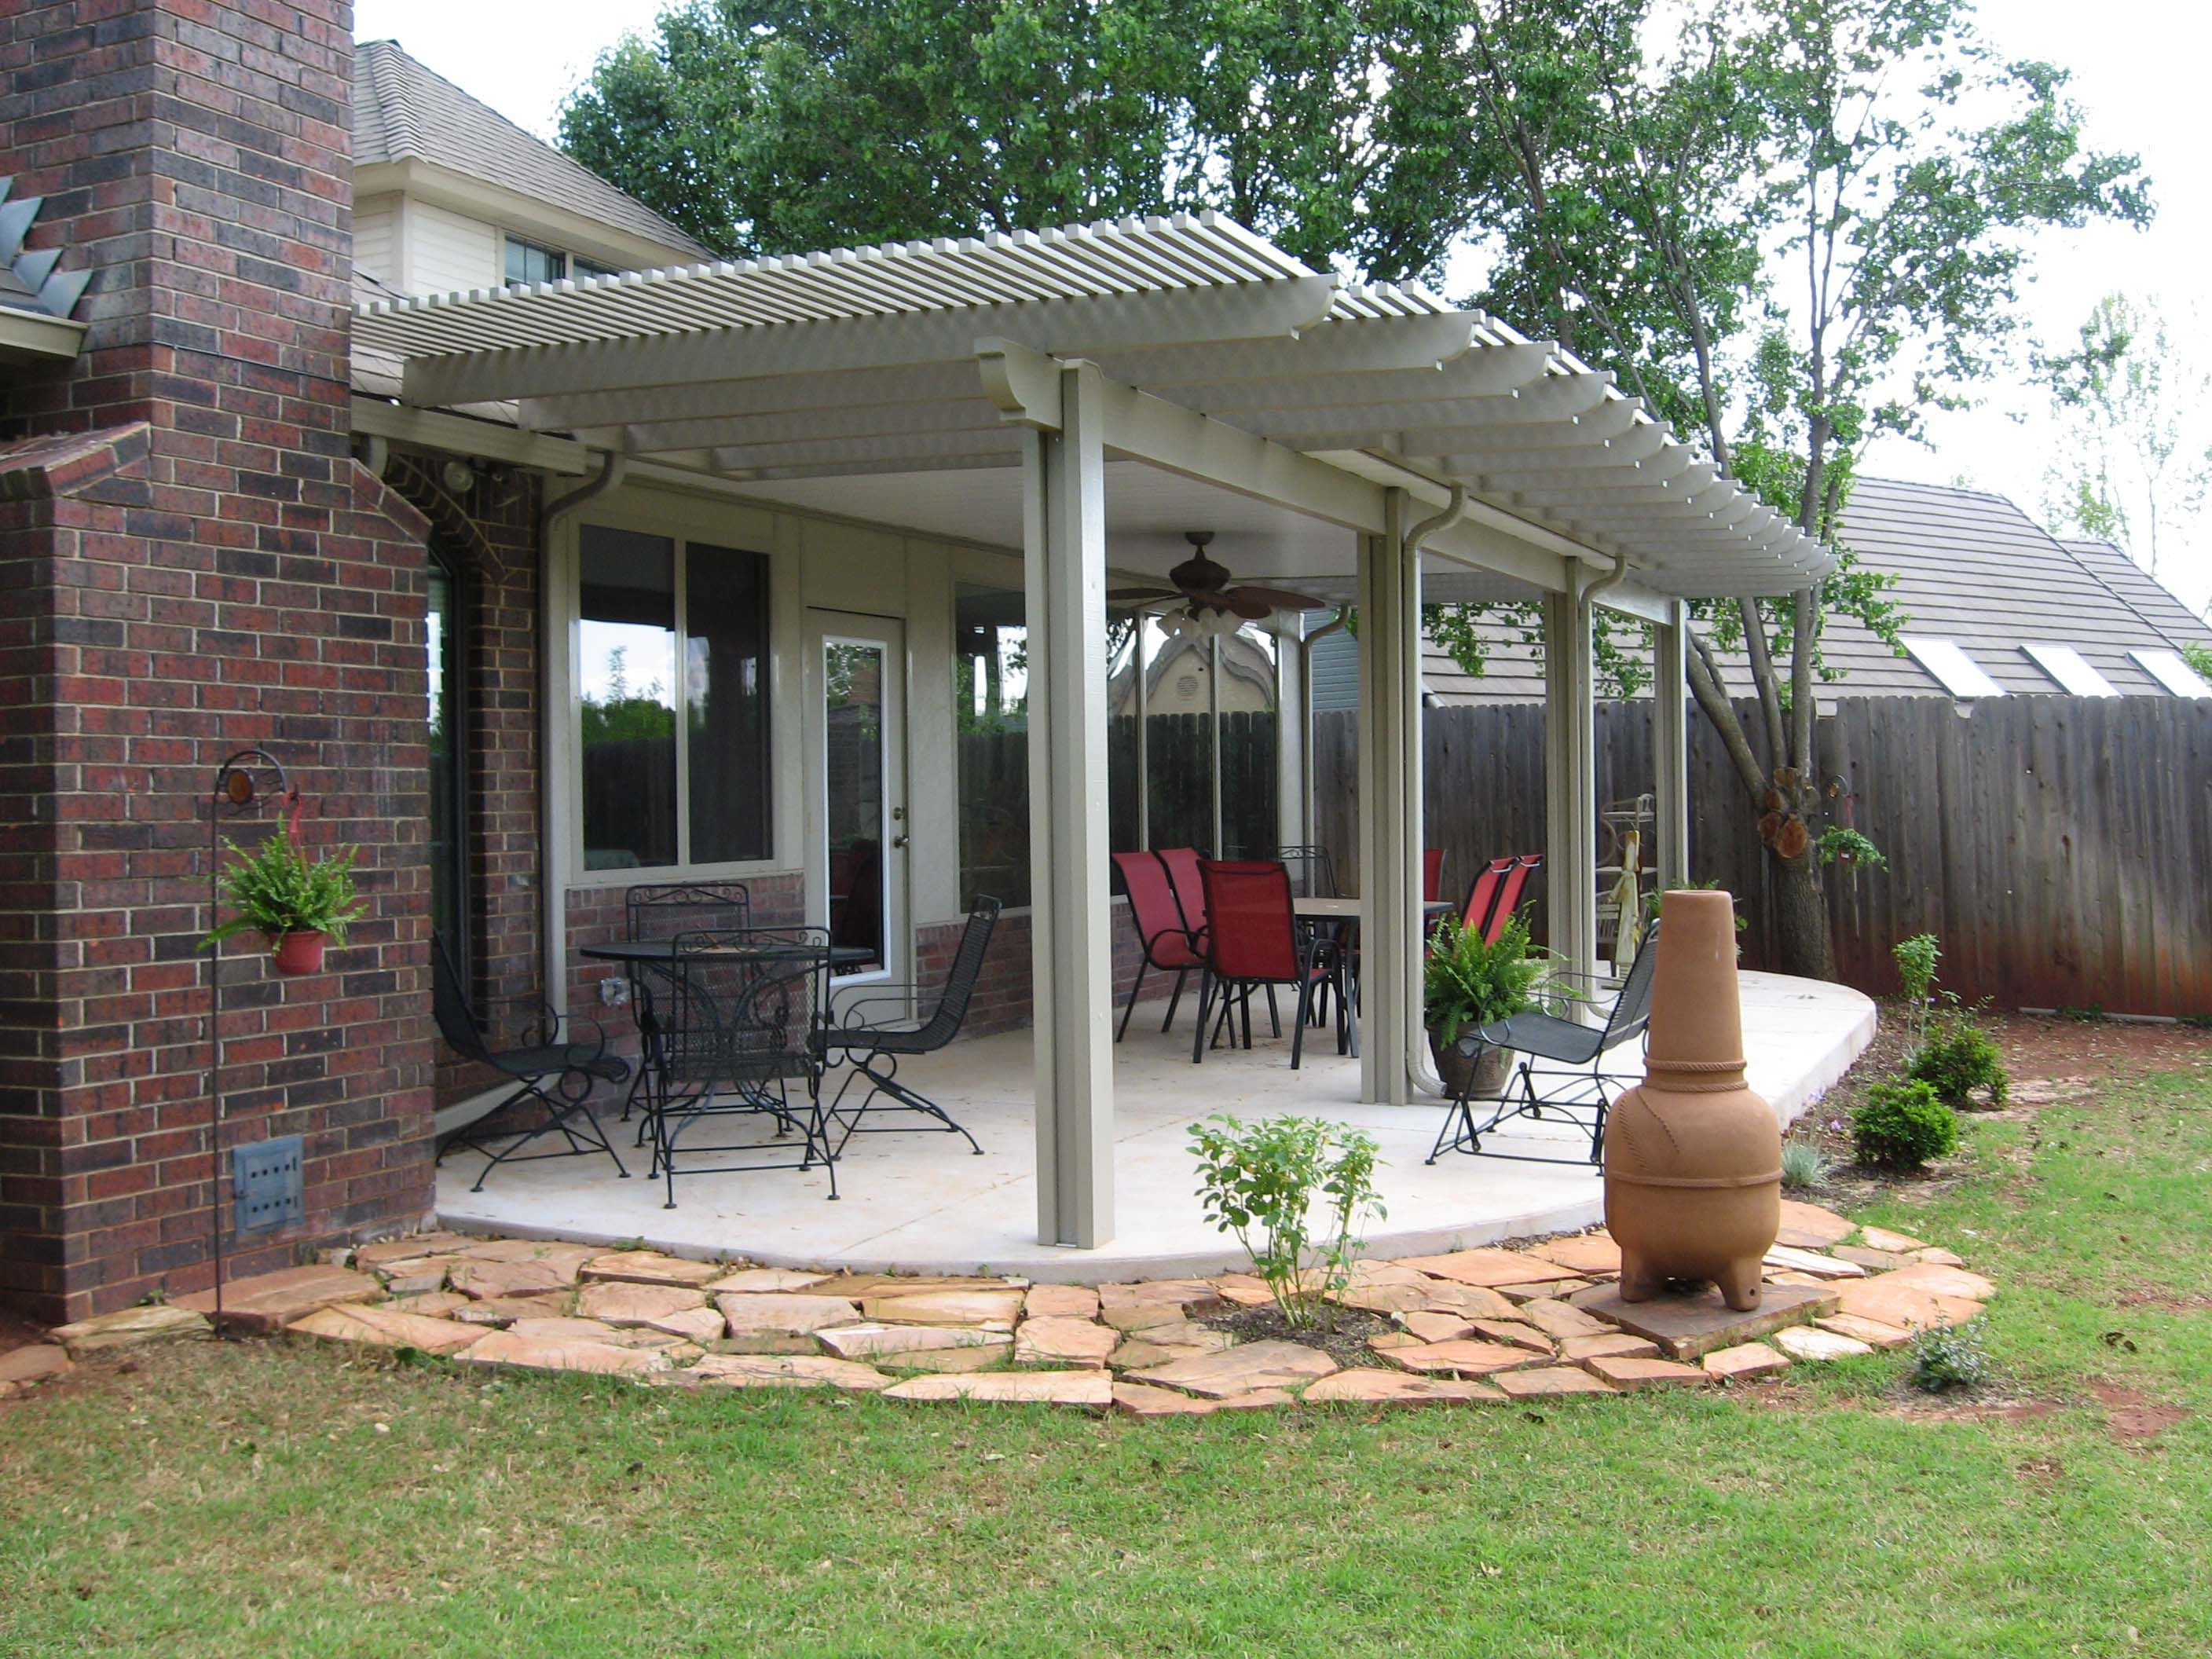 33 Pergola Ideas To Keep Cool This Summer Outdoor Patio Designs